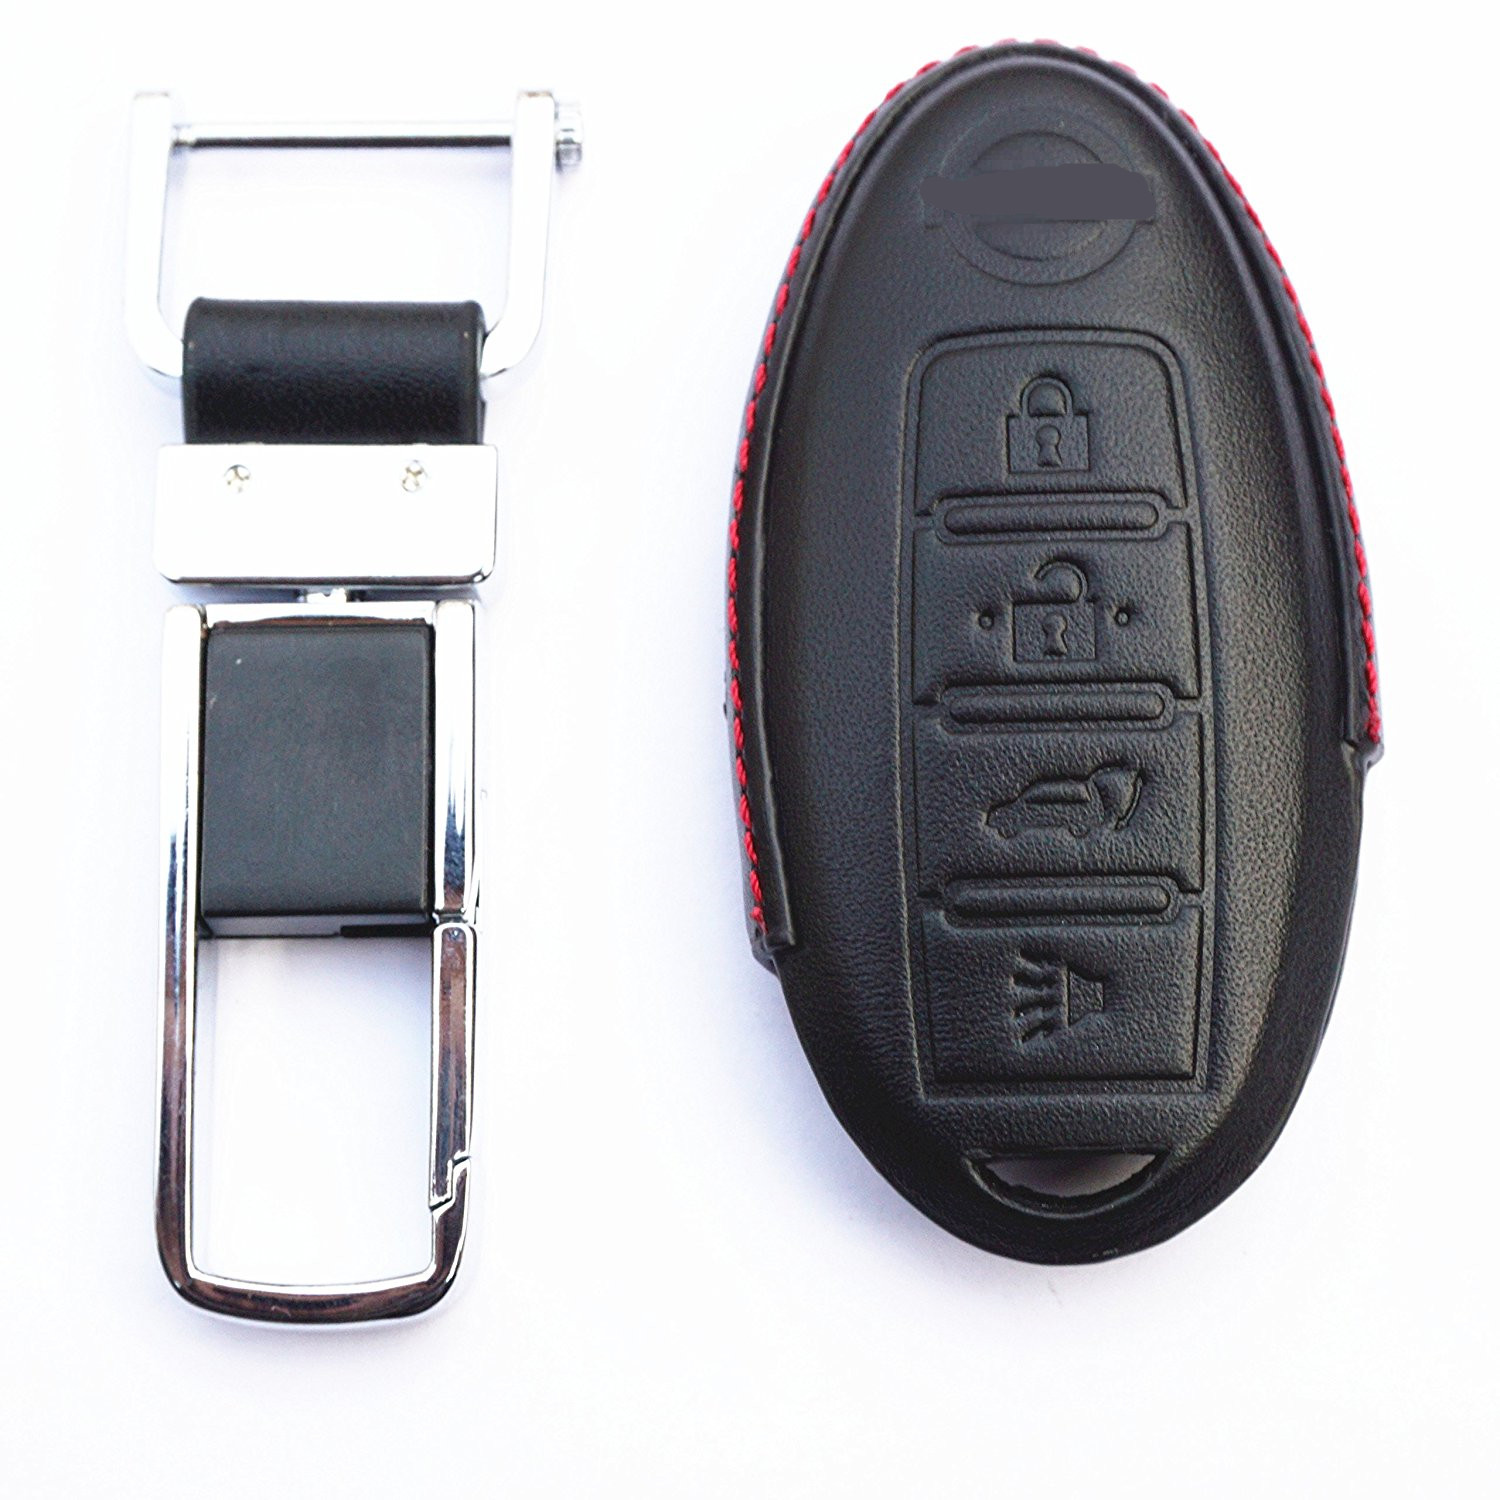 WFMJ Leather 4 Buttons Key Chain Cover Case For Nissan 350Z 370Z Pathfinder Versa Maxima Altima Armada Rogue Sentra Murano GT-R